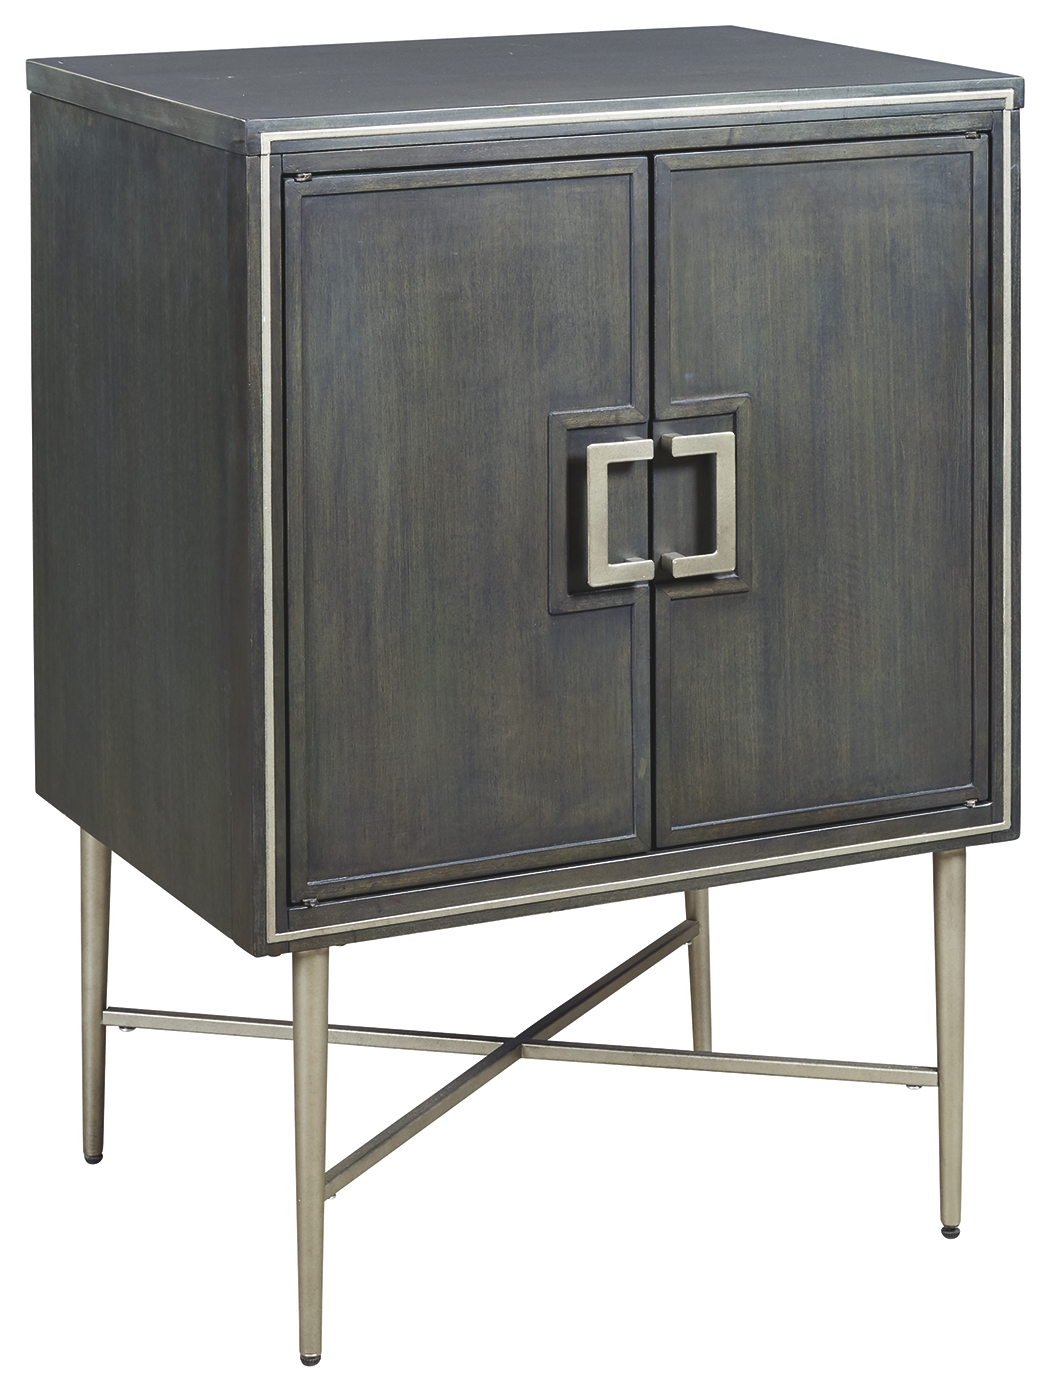 martin target bayside knobs door antique furnishings mirimyn slide accent pulls room one locks windham cabinet latches cabinets curio white diy grey hinges cupboard med for keys